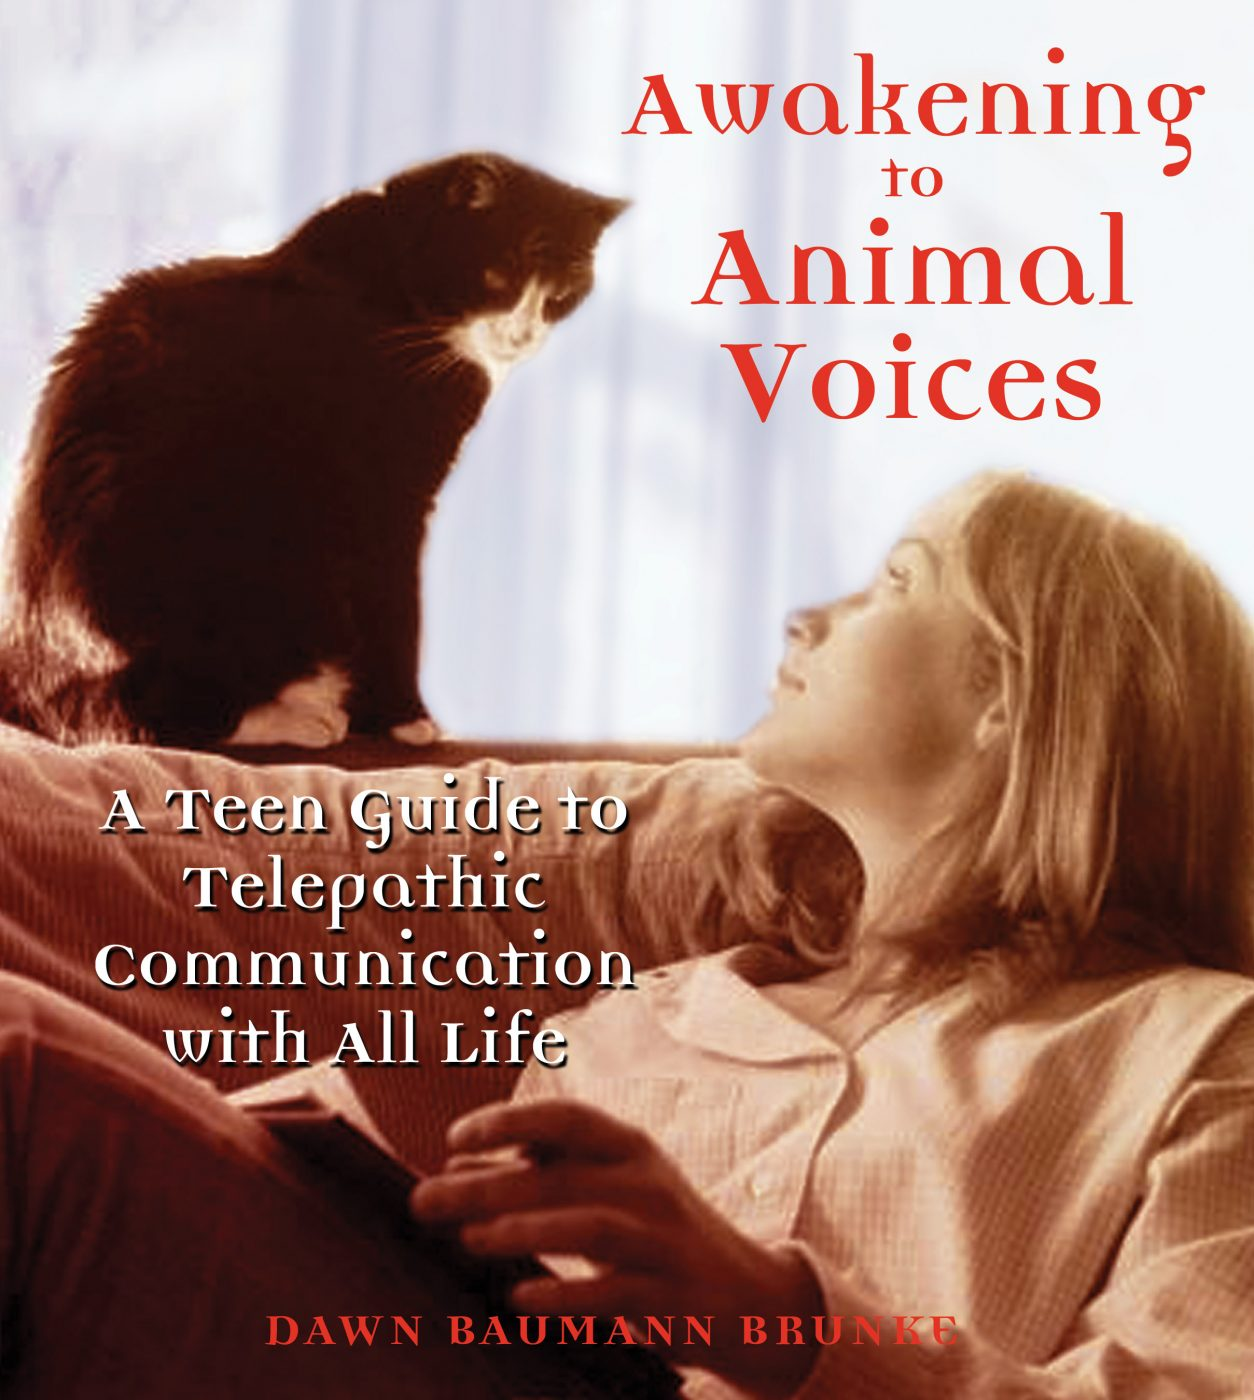 Awakening To Animal Voices By Dawn Baumann Brunke